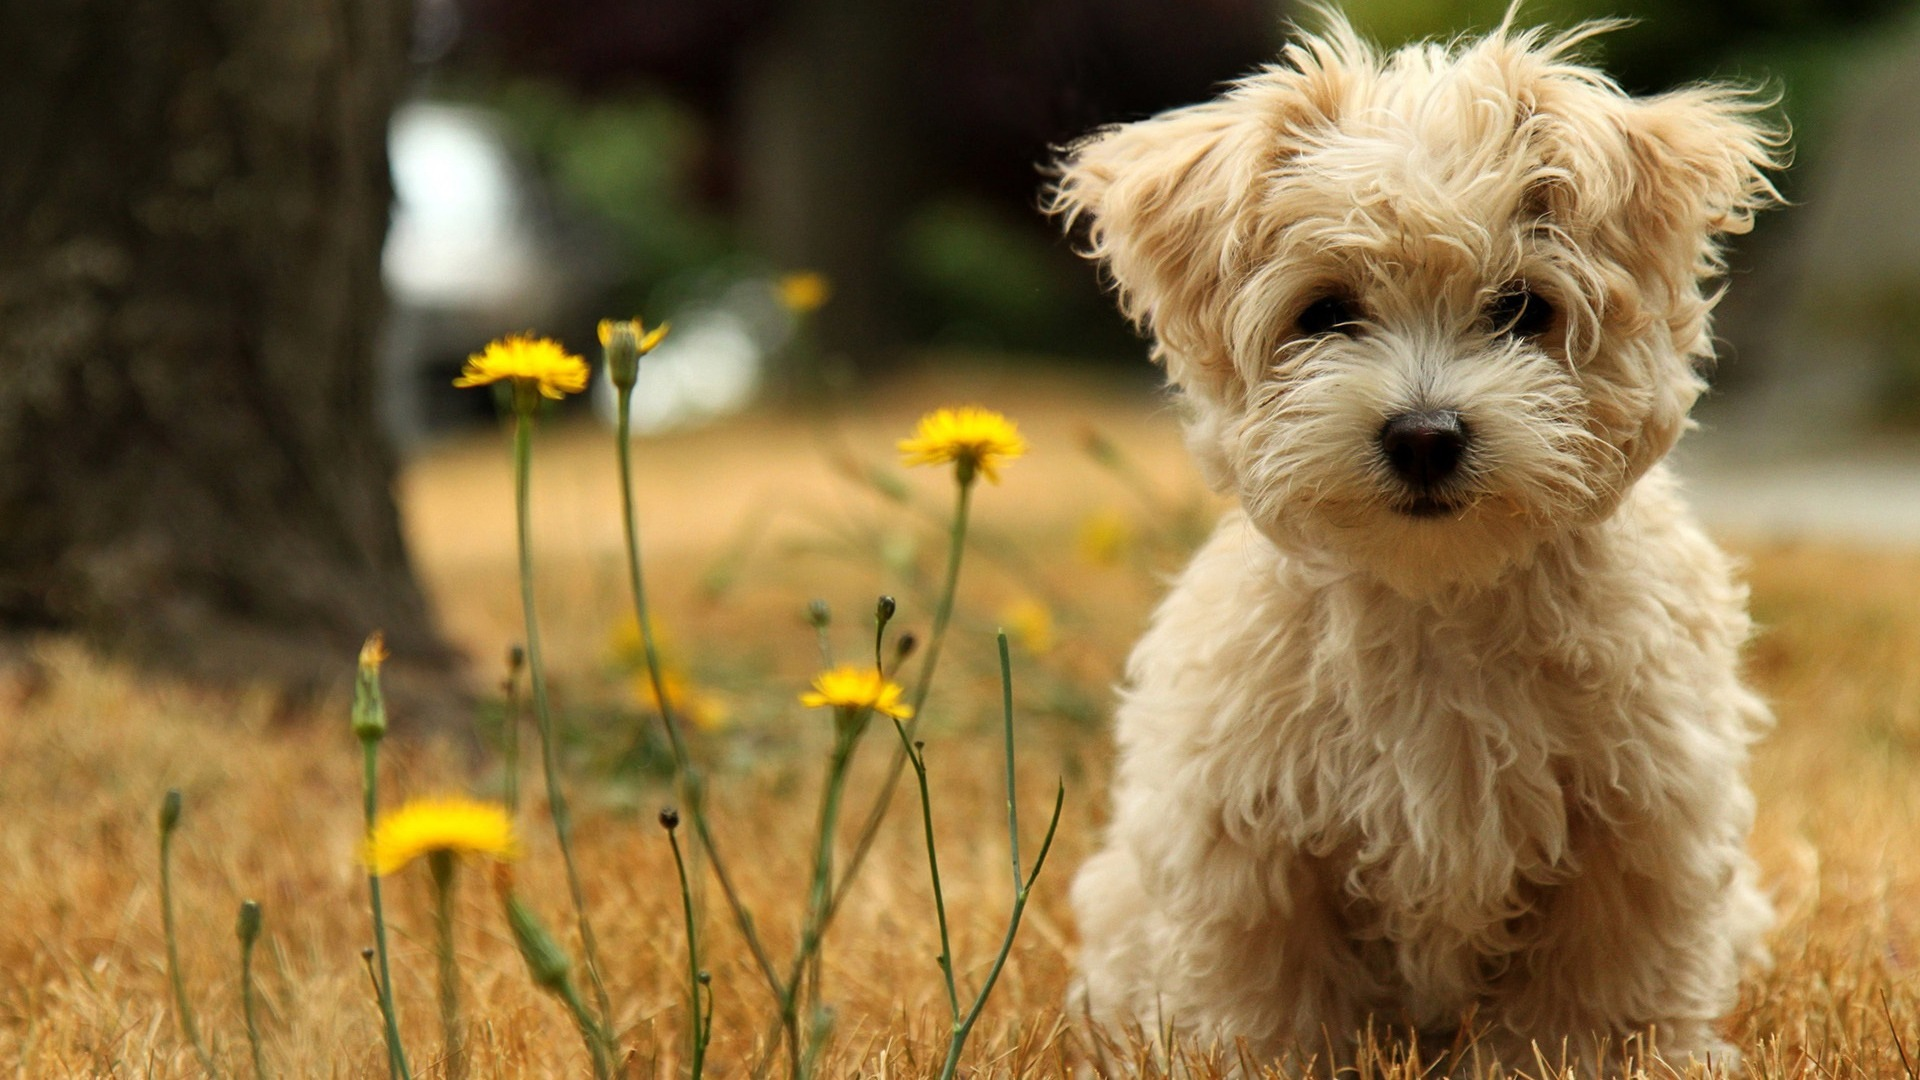 Havanese dog in flowers wallpaper